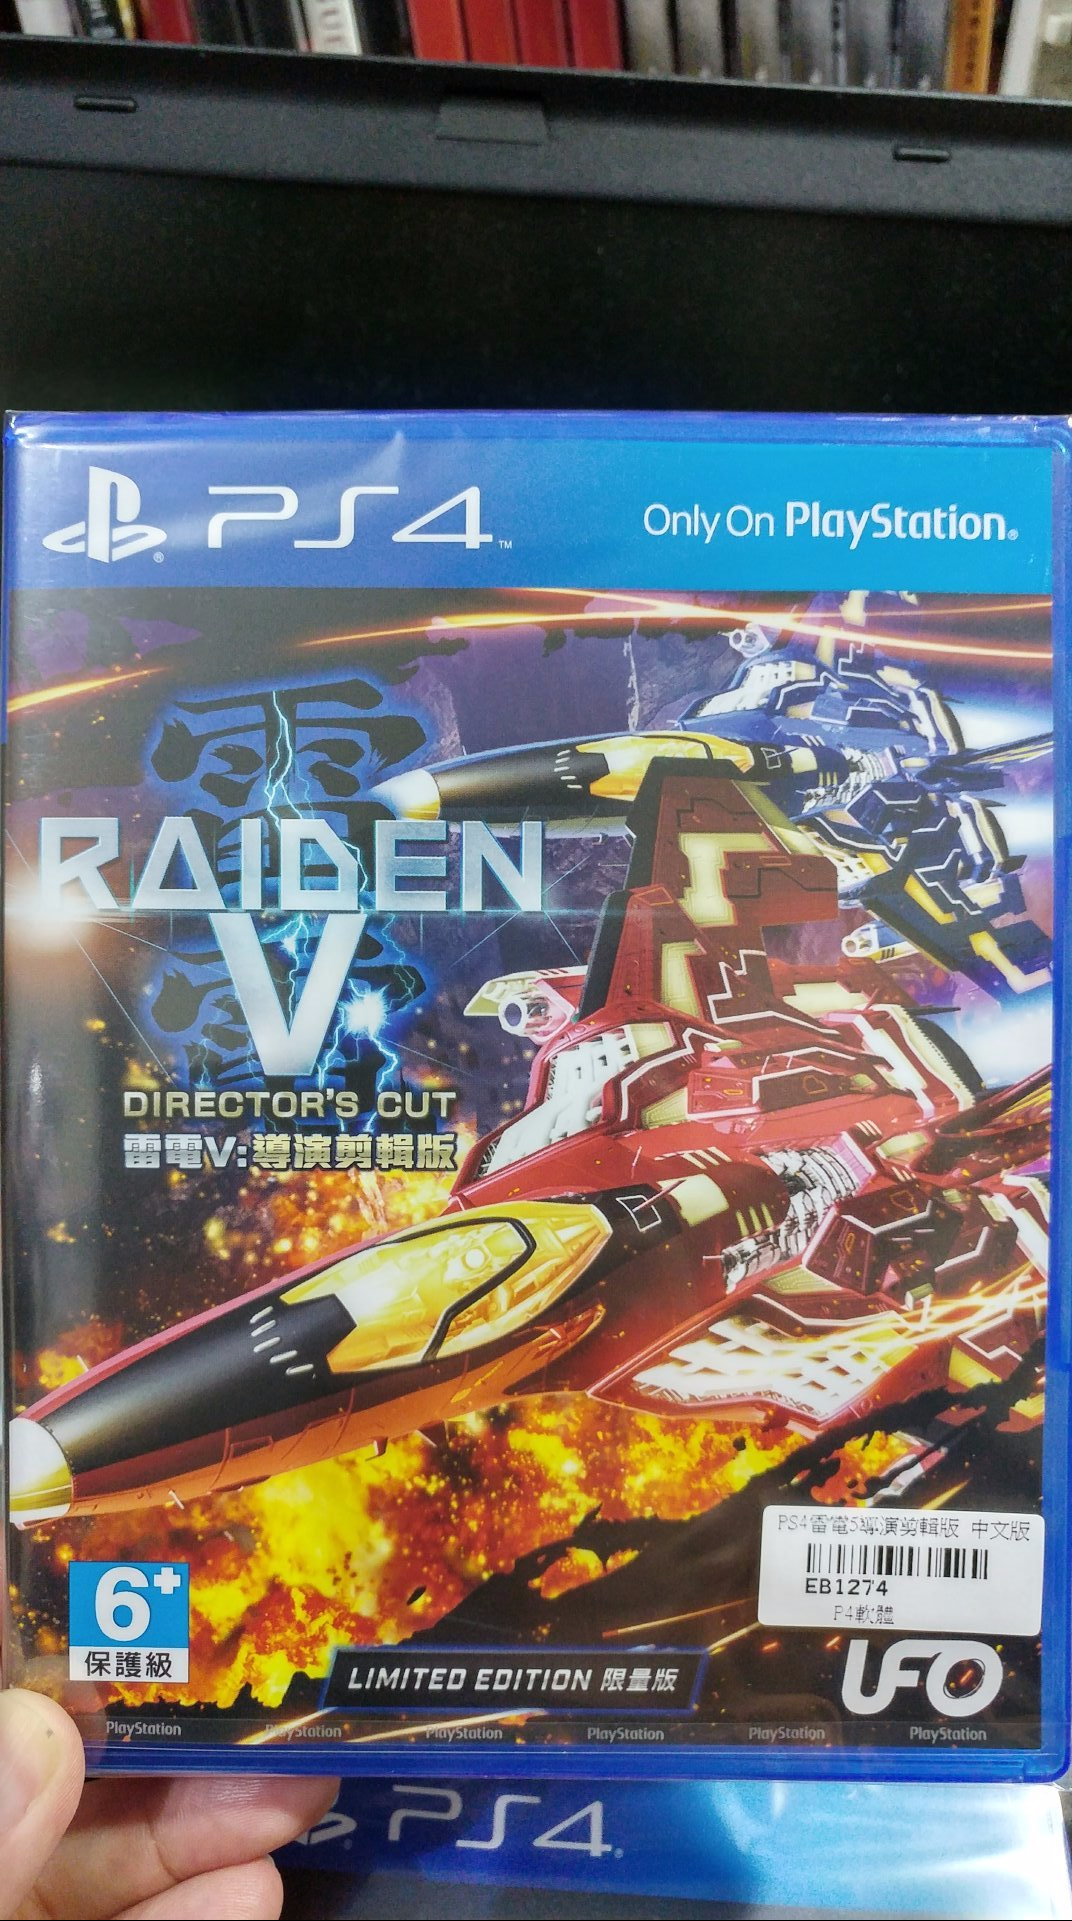 PS4 Raiden V: Director's Cut Limited Edition 雷電V導演剪輯限定版入手